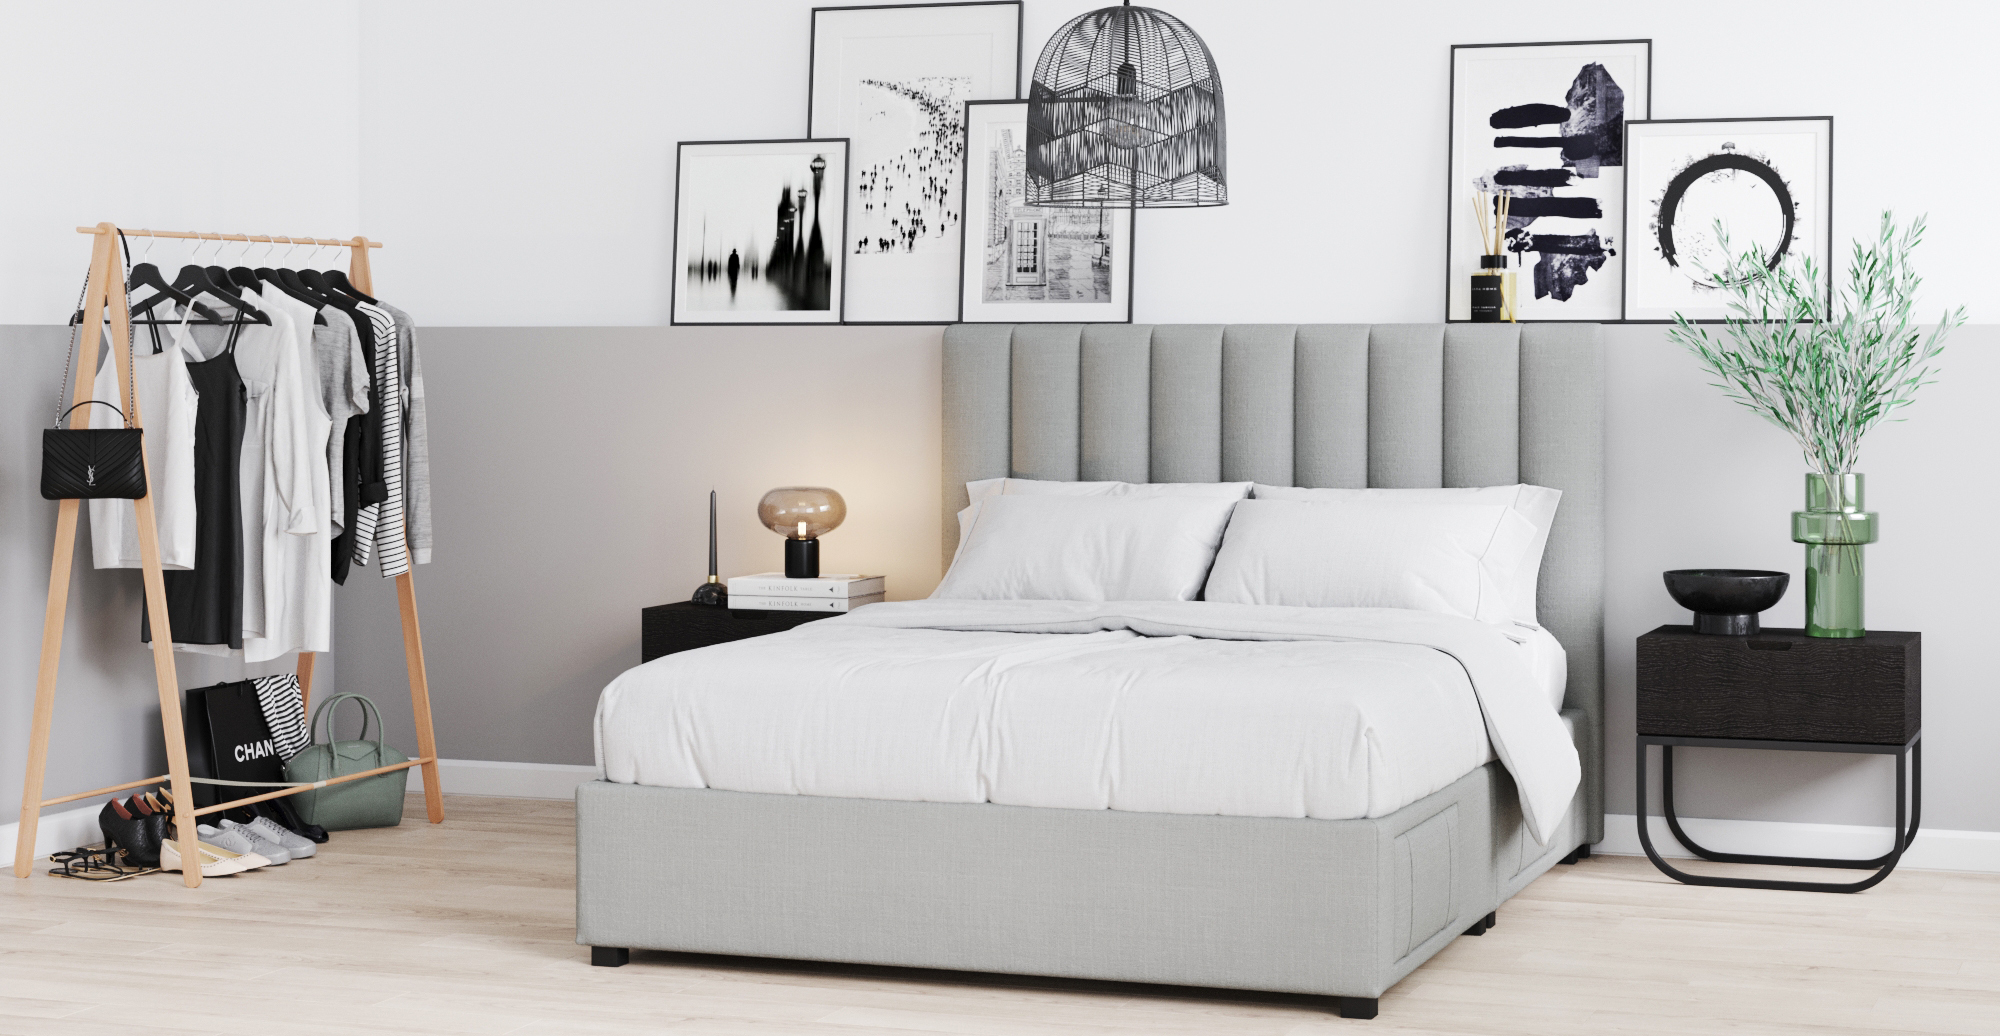 Brosa Megan Queen Size Upholstered Bed Frame with Drawers styled in classic traditional bedroom